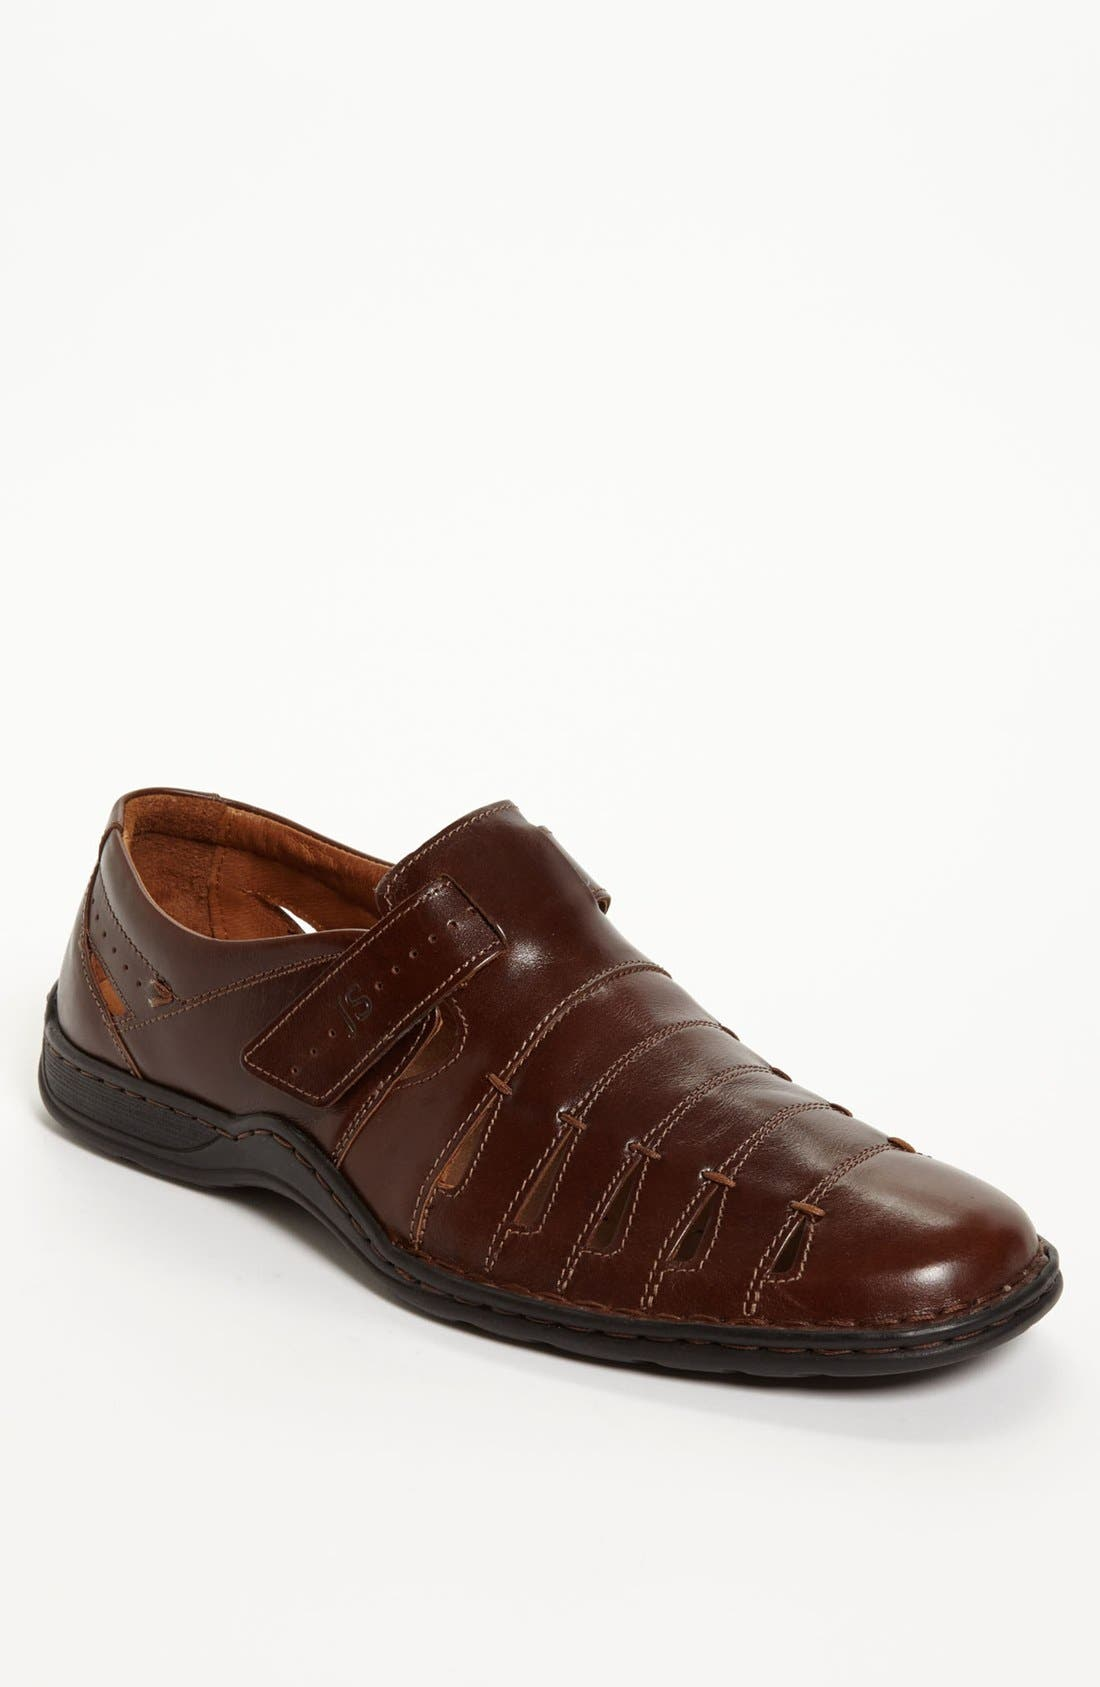 'Lionel 06' Sandal,                         Main,                         color, Brown/ Brown Leather